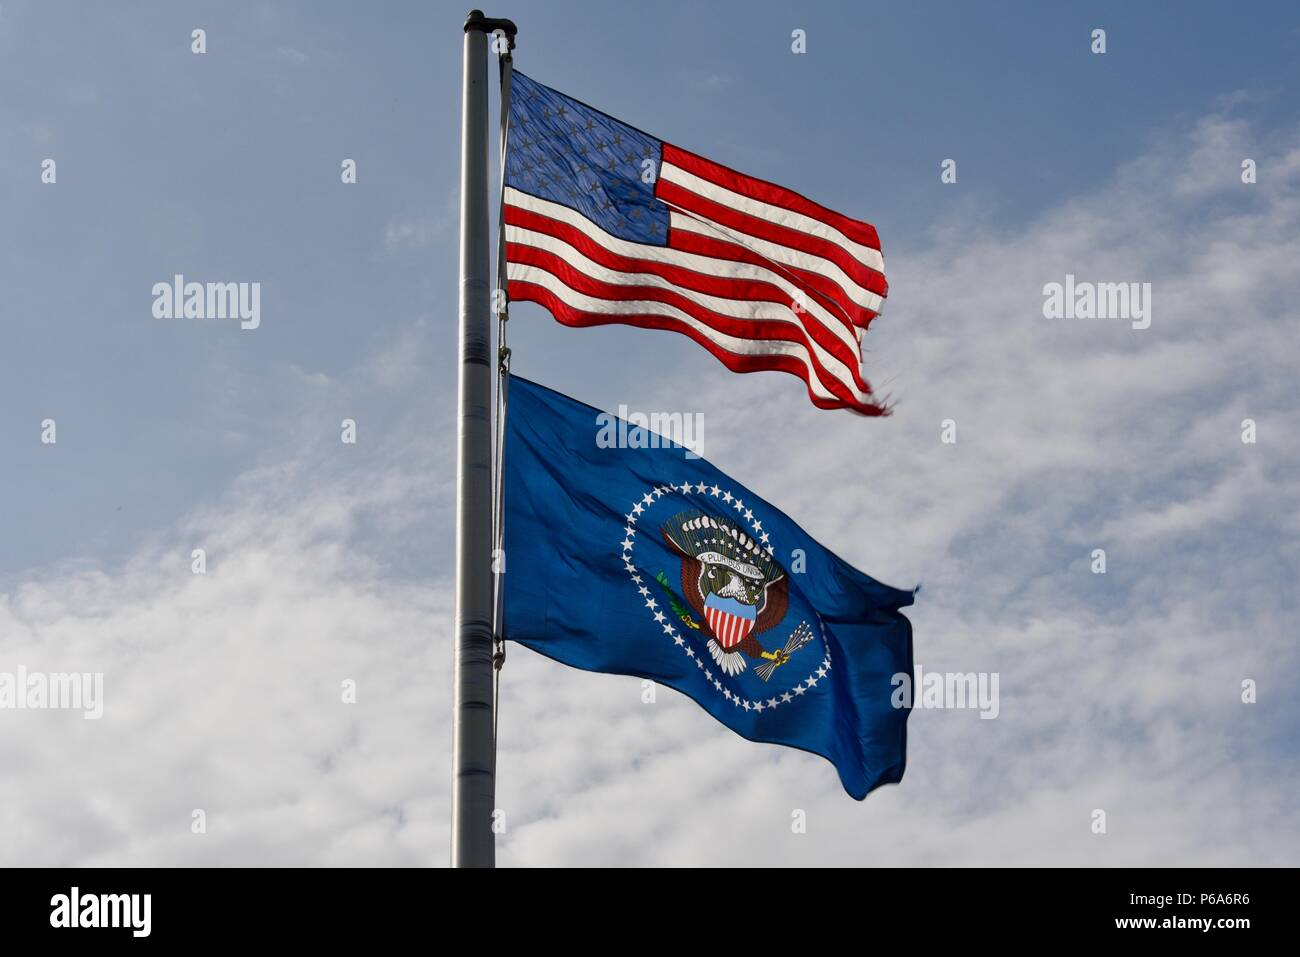 United States national & US Presidential flags, US, Presidential seal on the blue flag, flying over Lyndon B Johnson National Historical Park, TX USA Stock Photo